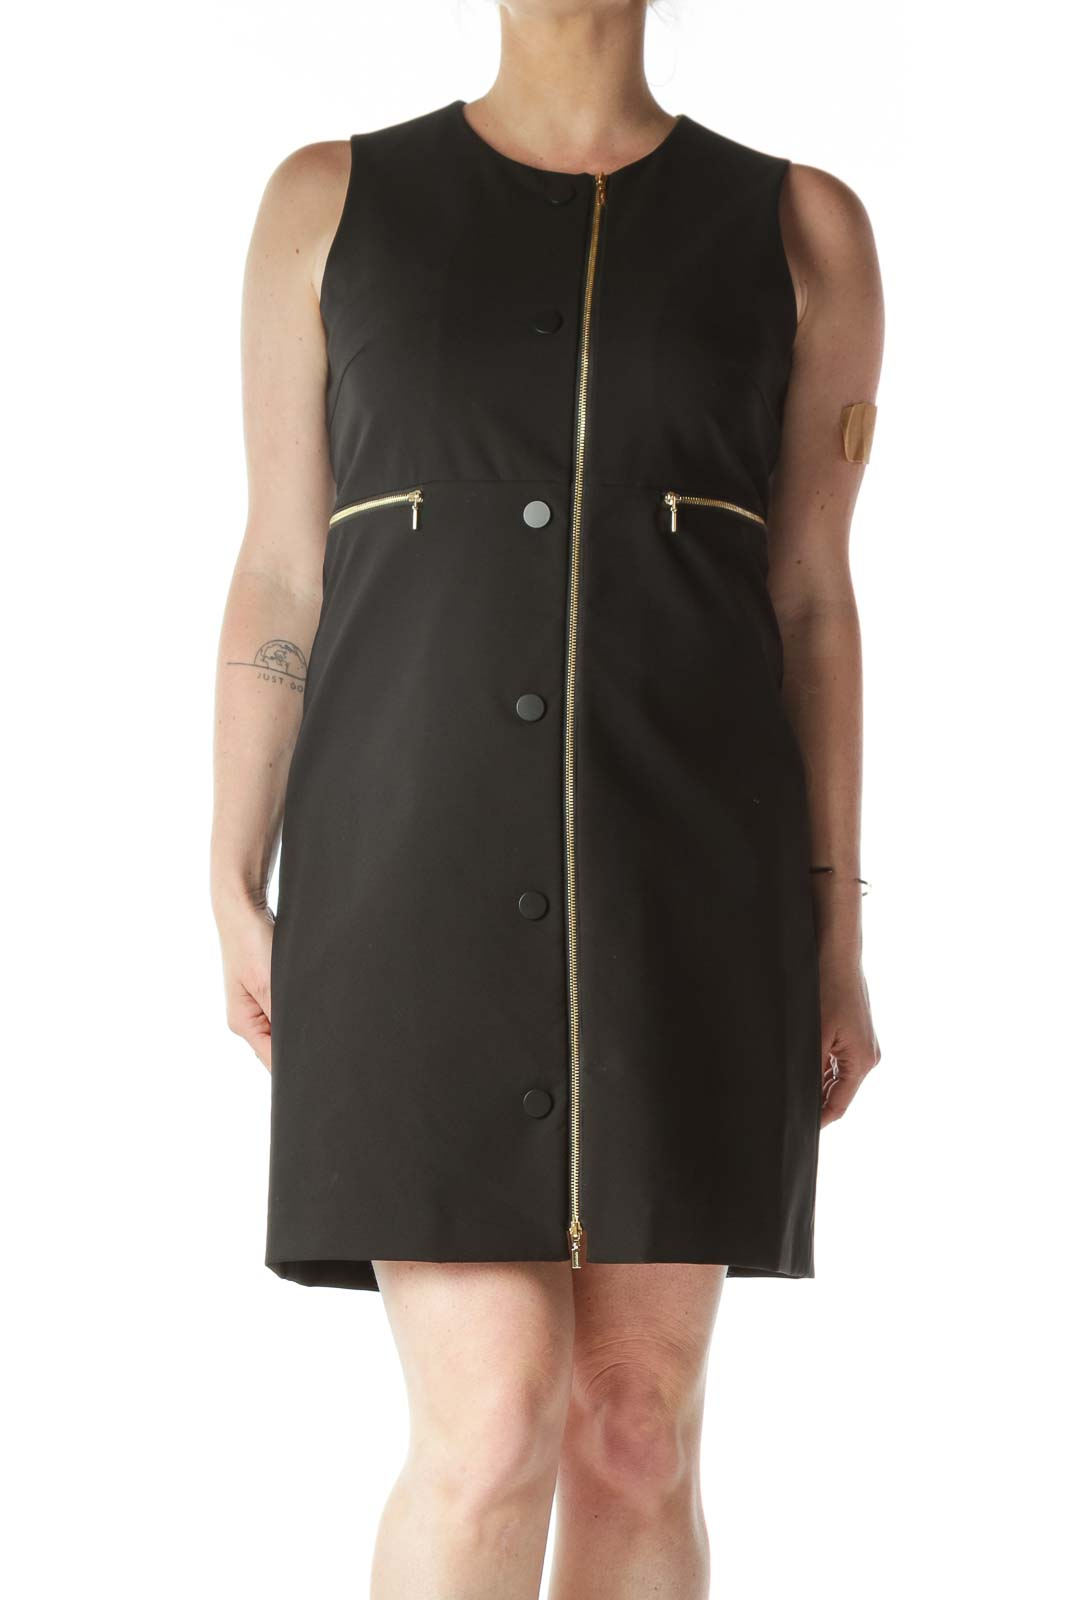 Black Matte-Buttoned Gold-Zipper Work Dress